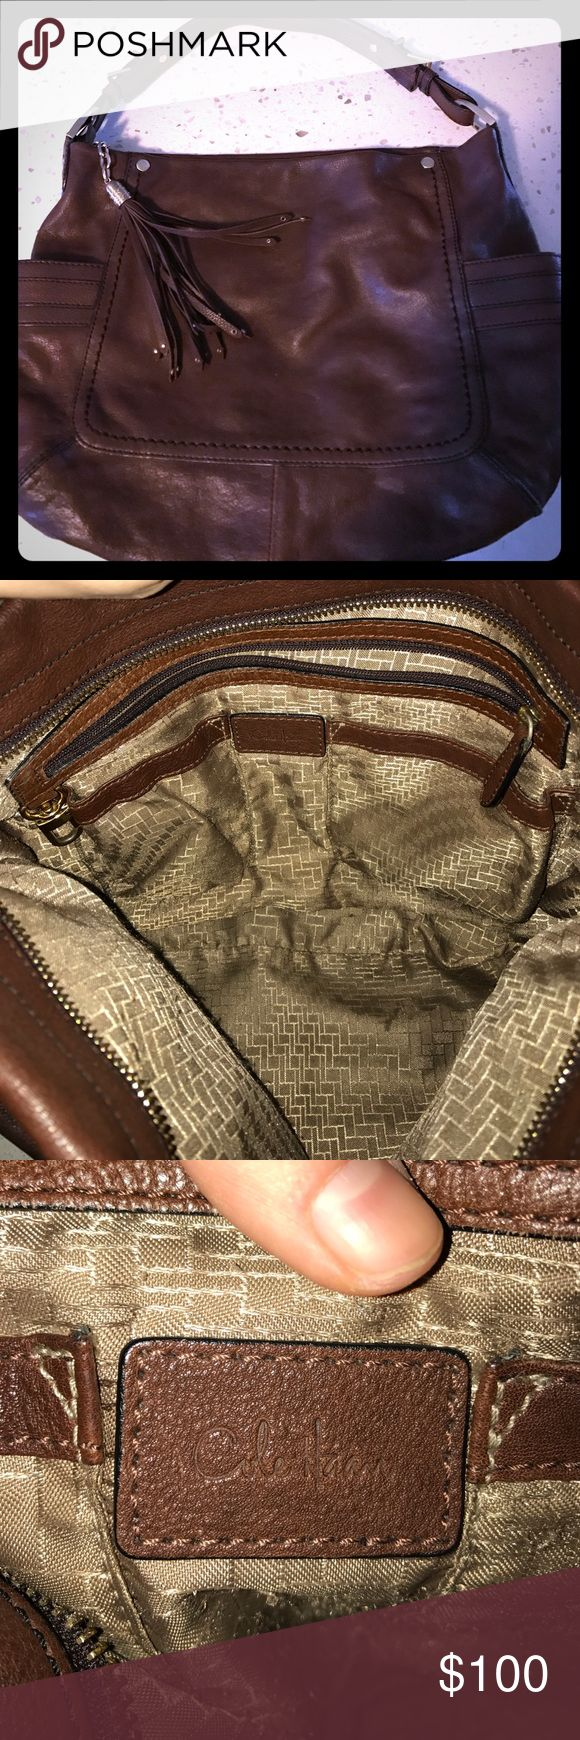 Cole Haan brown purse!! EUC Beautiful brown, gently used Cole Haan shoulder purse. Soft leather. Can post more pictures if needed! Cole Haan Bags Shoulder Bags